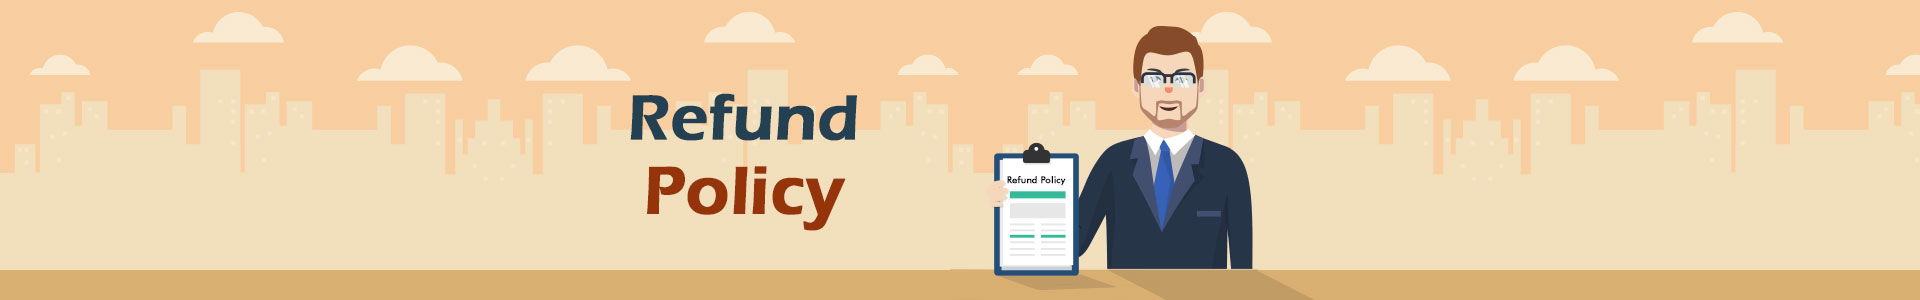 refund policy of GST